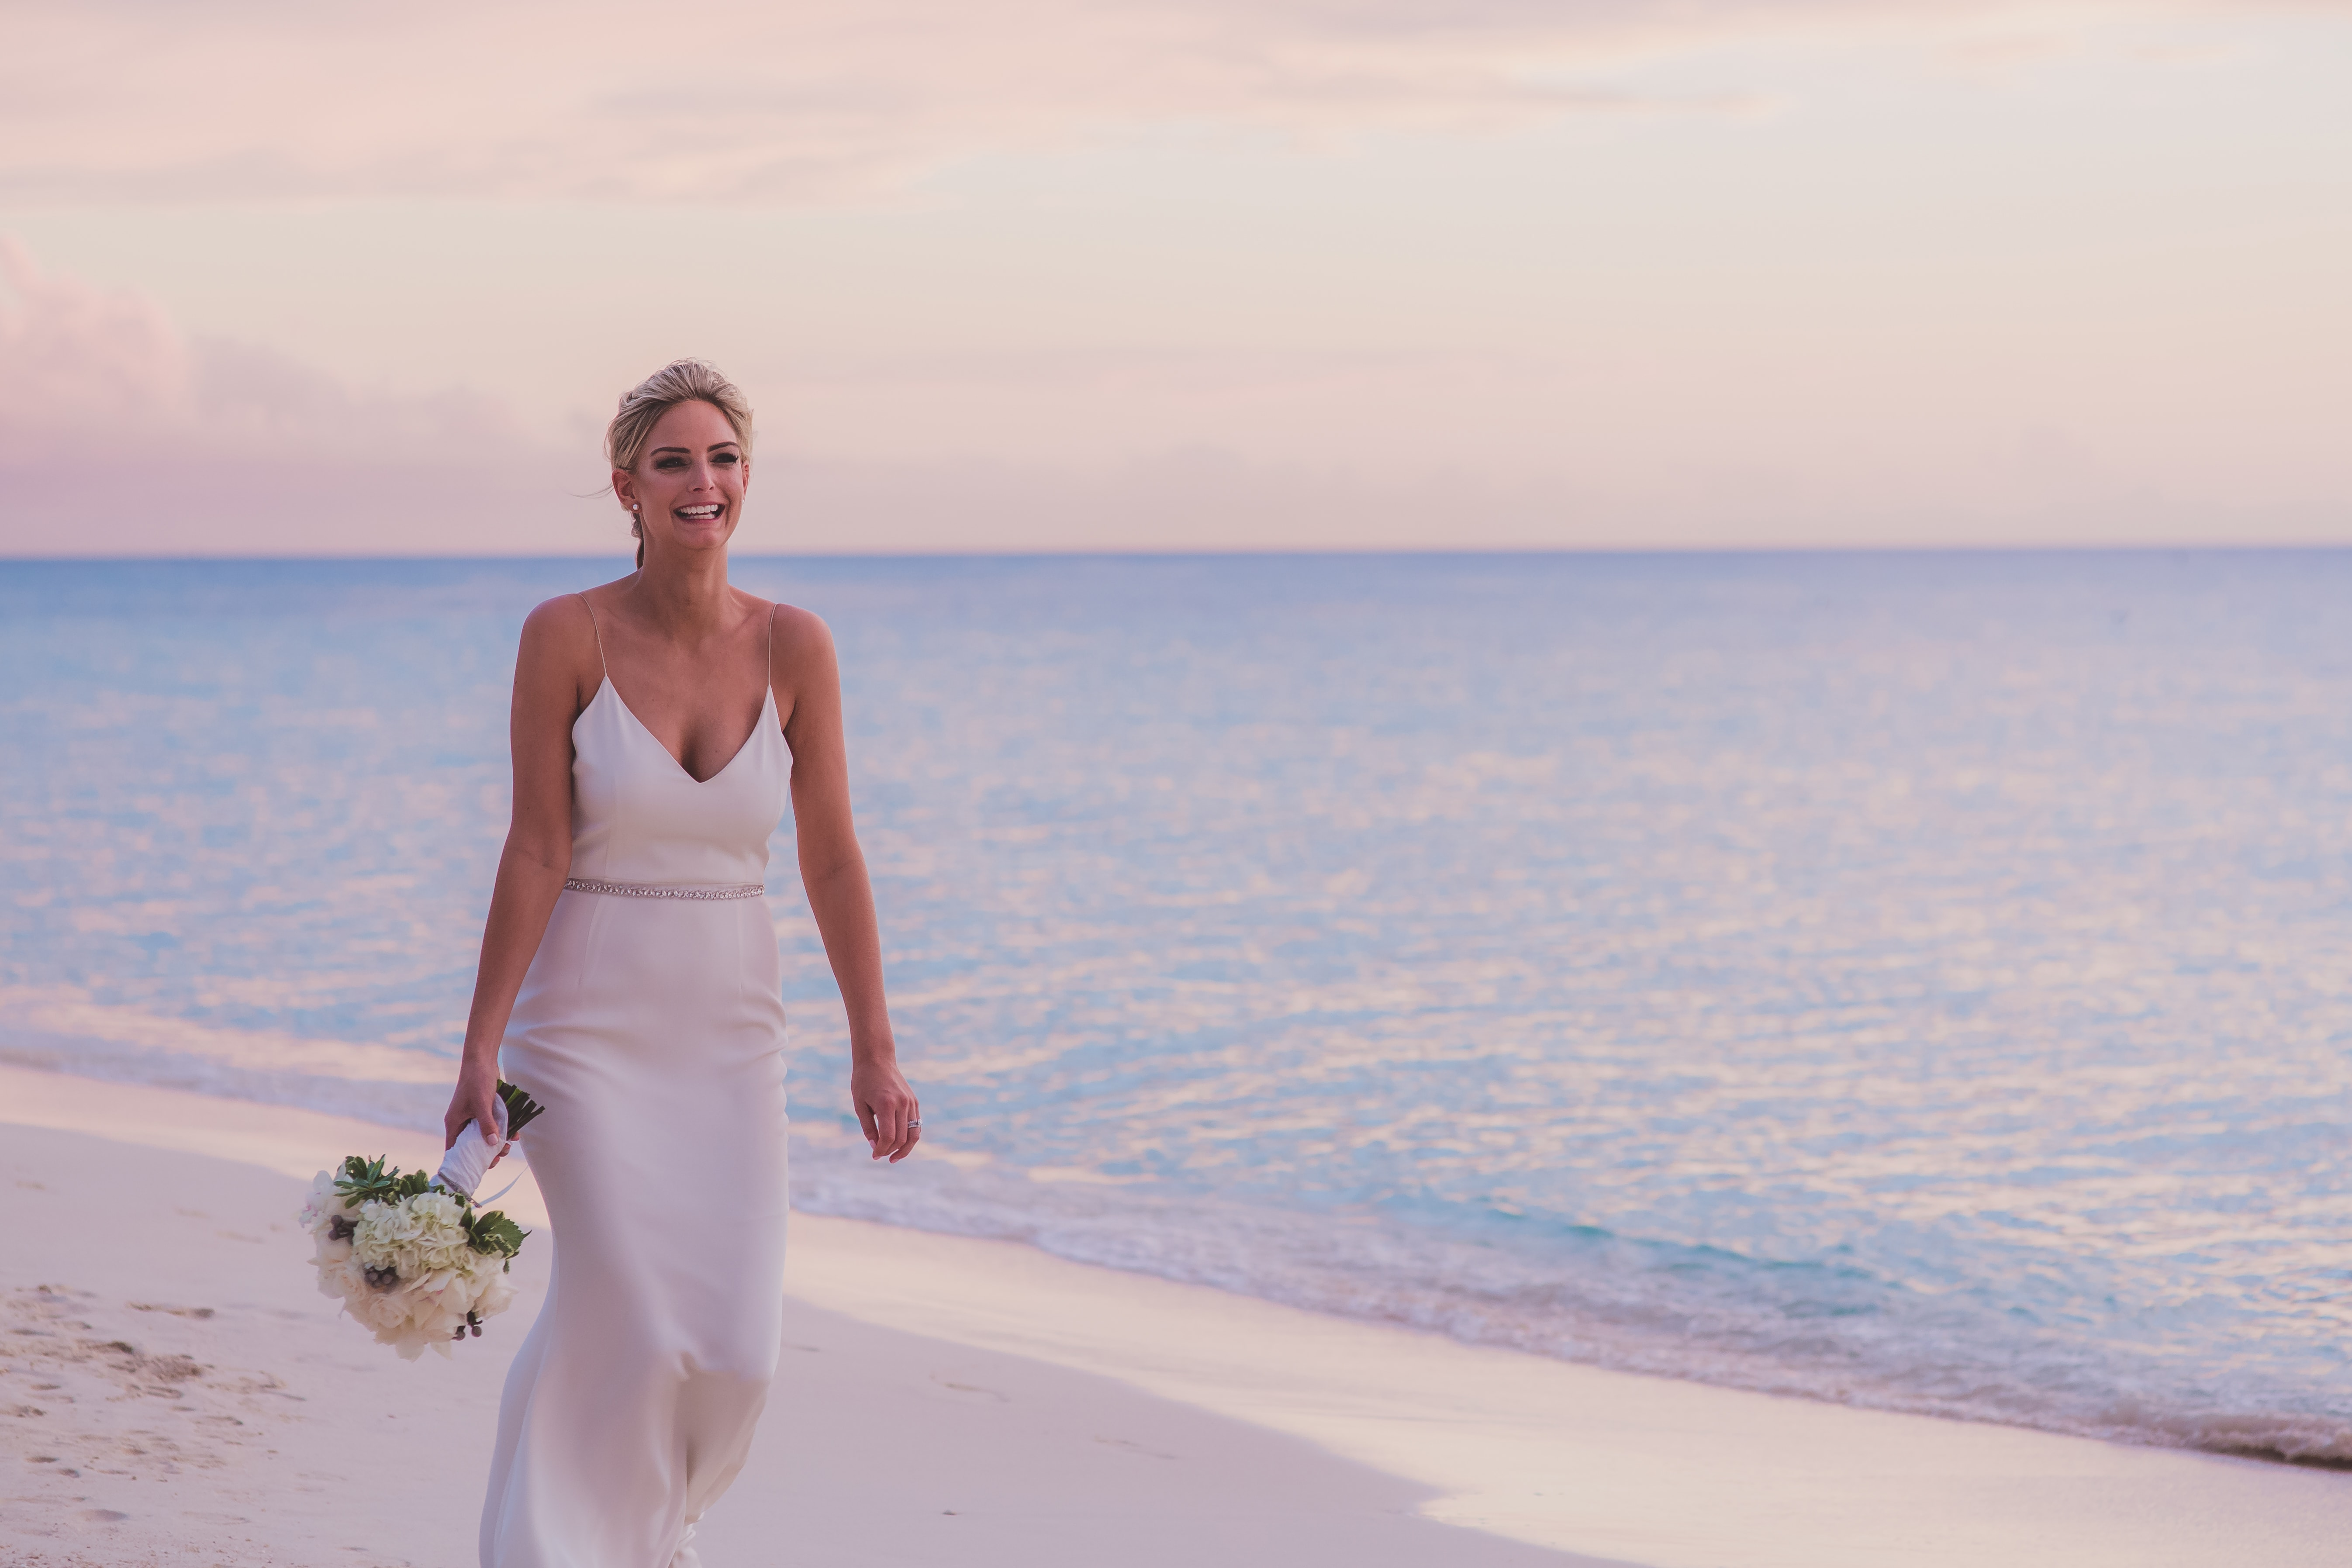 Photography by Chad Munro, Picture this Studios, for www.adrianaweddings.com, Cayman Islands Elopement